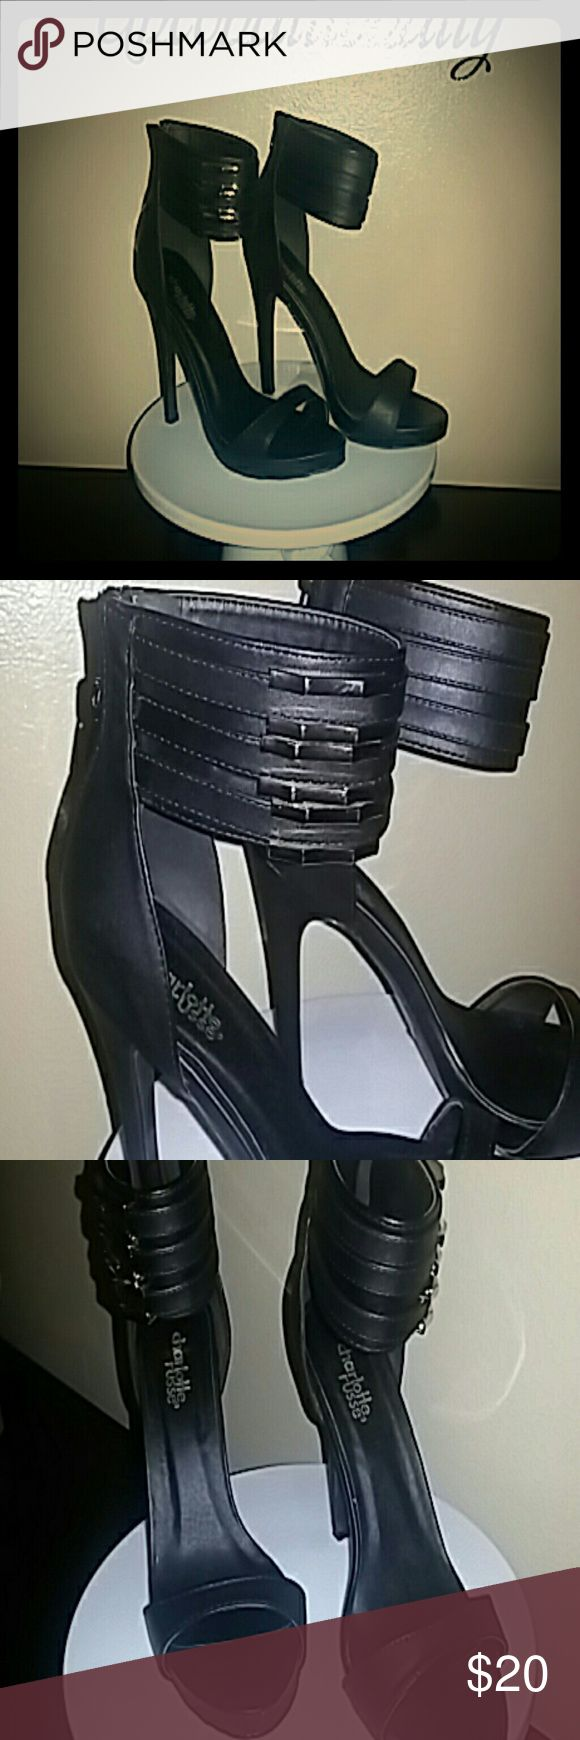 💕SOLD💕Charlotte Russe Heels Wore one time to Las Vegas for a couple of hours. In excellent shape! The gold accent gives it a very sophisticated touch ? Charlotte Russe Shoes Heels